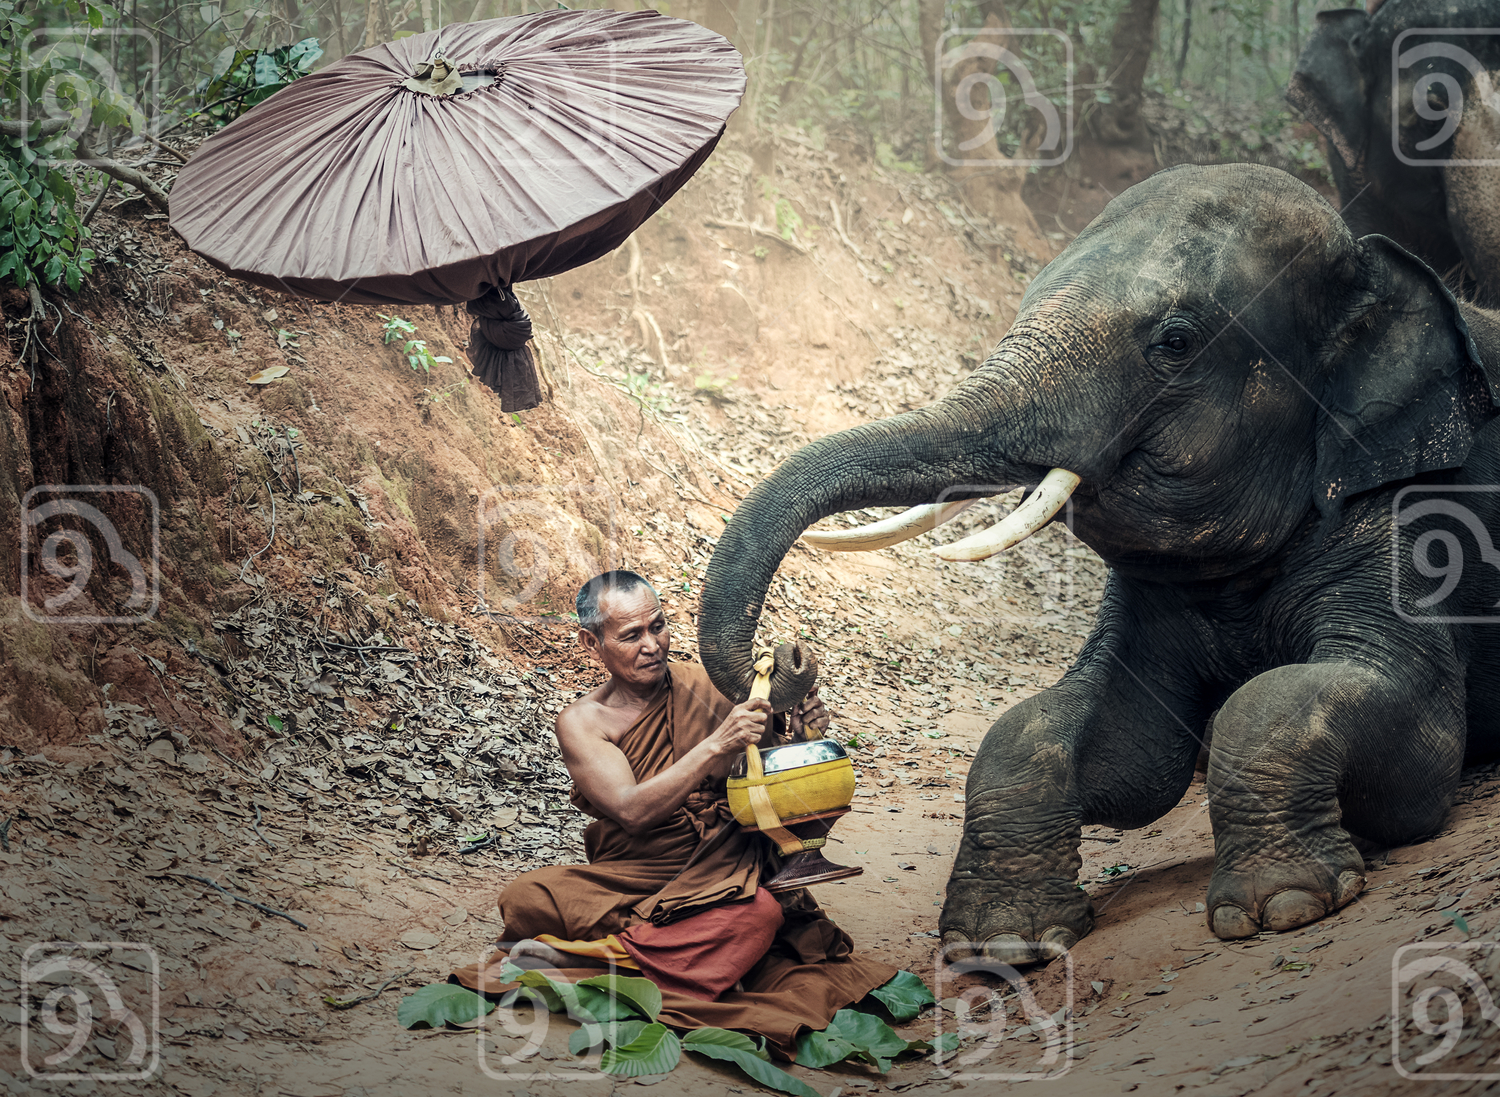 Monk in the jungle with elephant